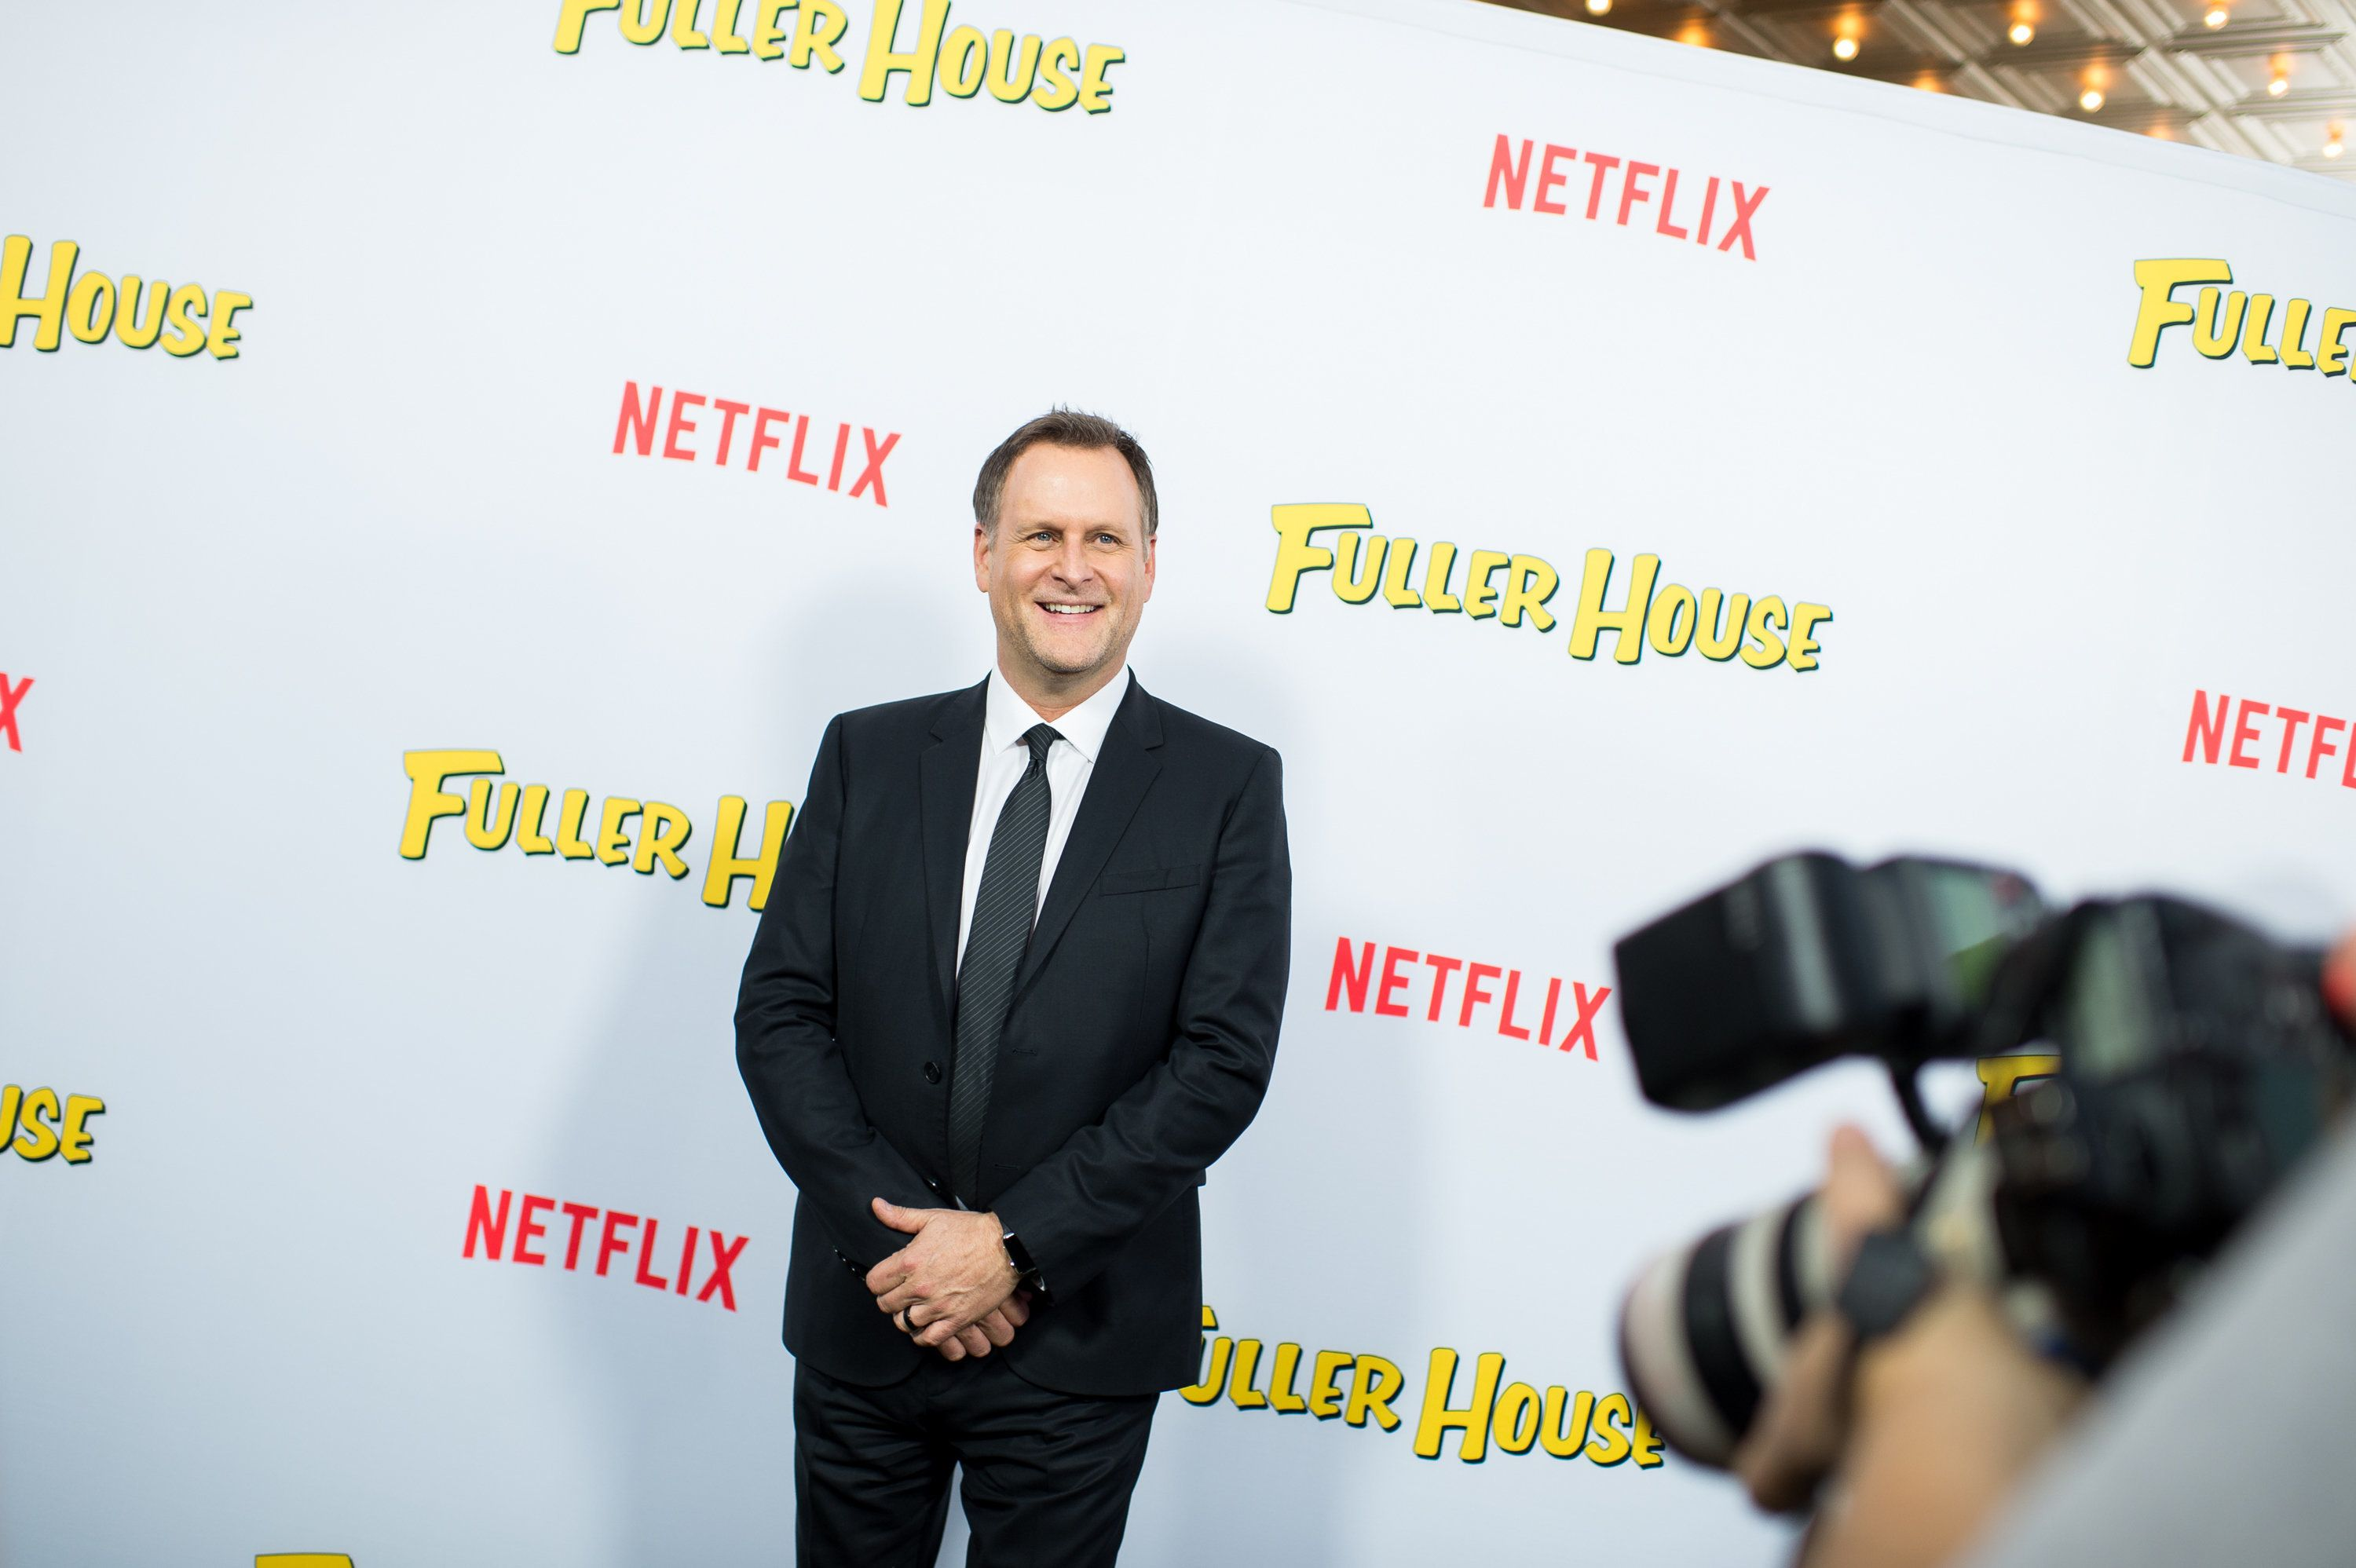 LOS ANGELES, CA - FEBRUARY 16:  Actor Dave Coulier attends the premiere of Netflix's 'Fuller House' at Pacific Theatres at The Grove on February 16, 2016 in Los Angeles, California.  (Photo by Emma McIntyre/Getty Images)